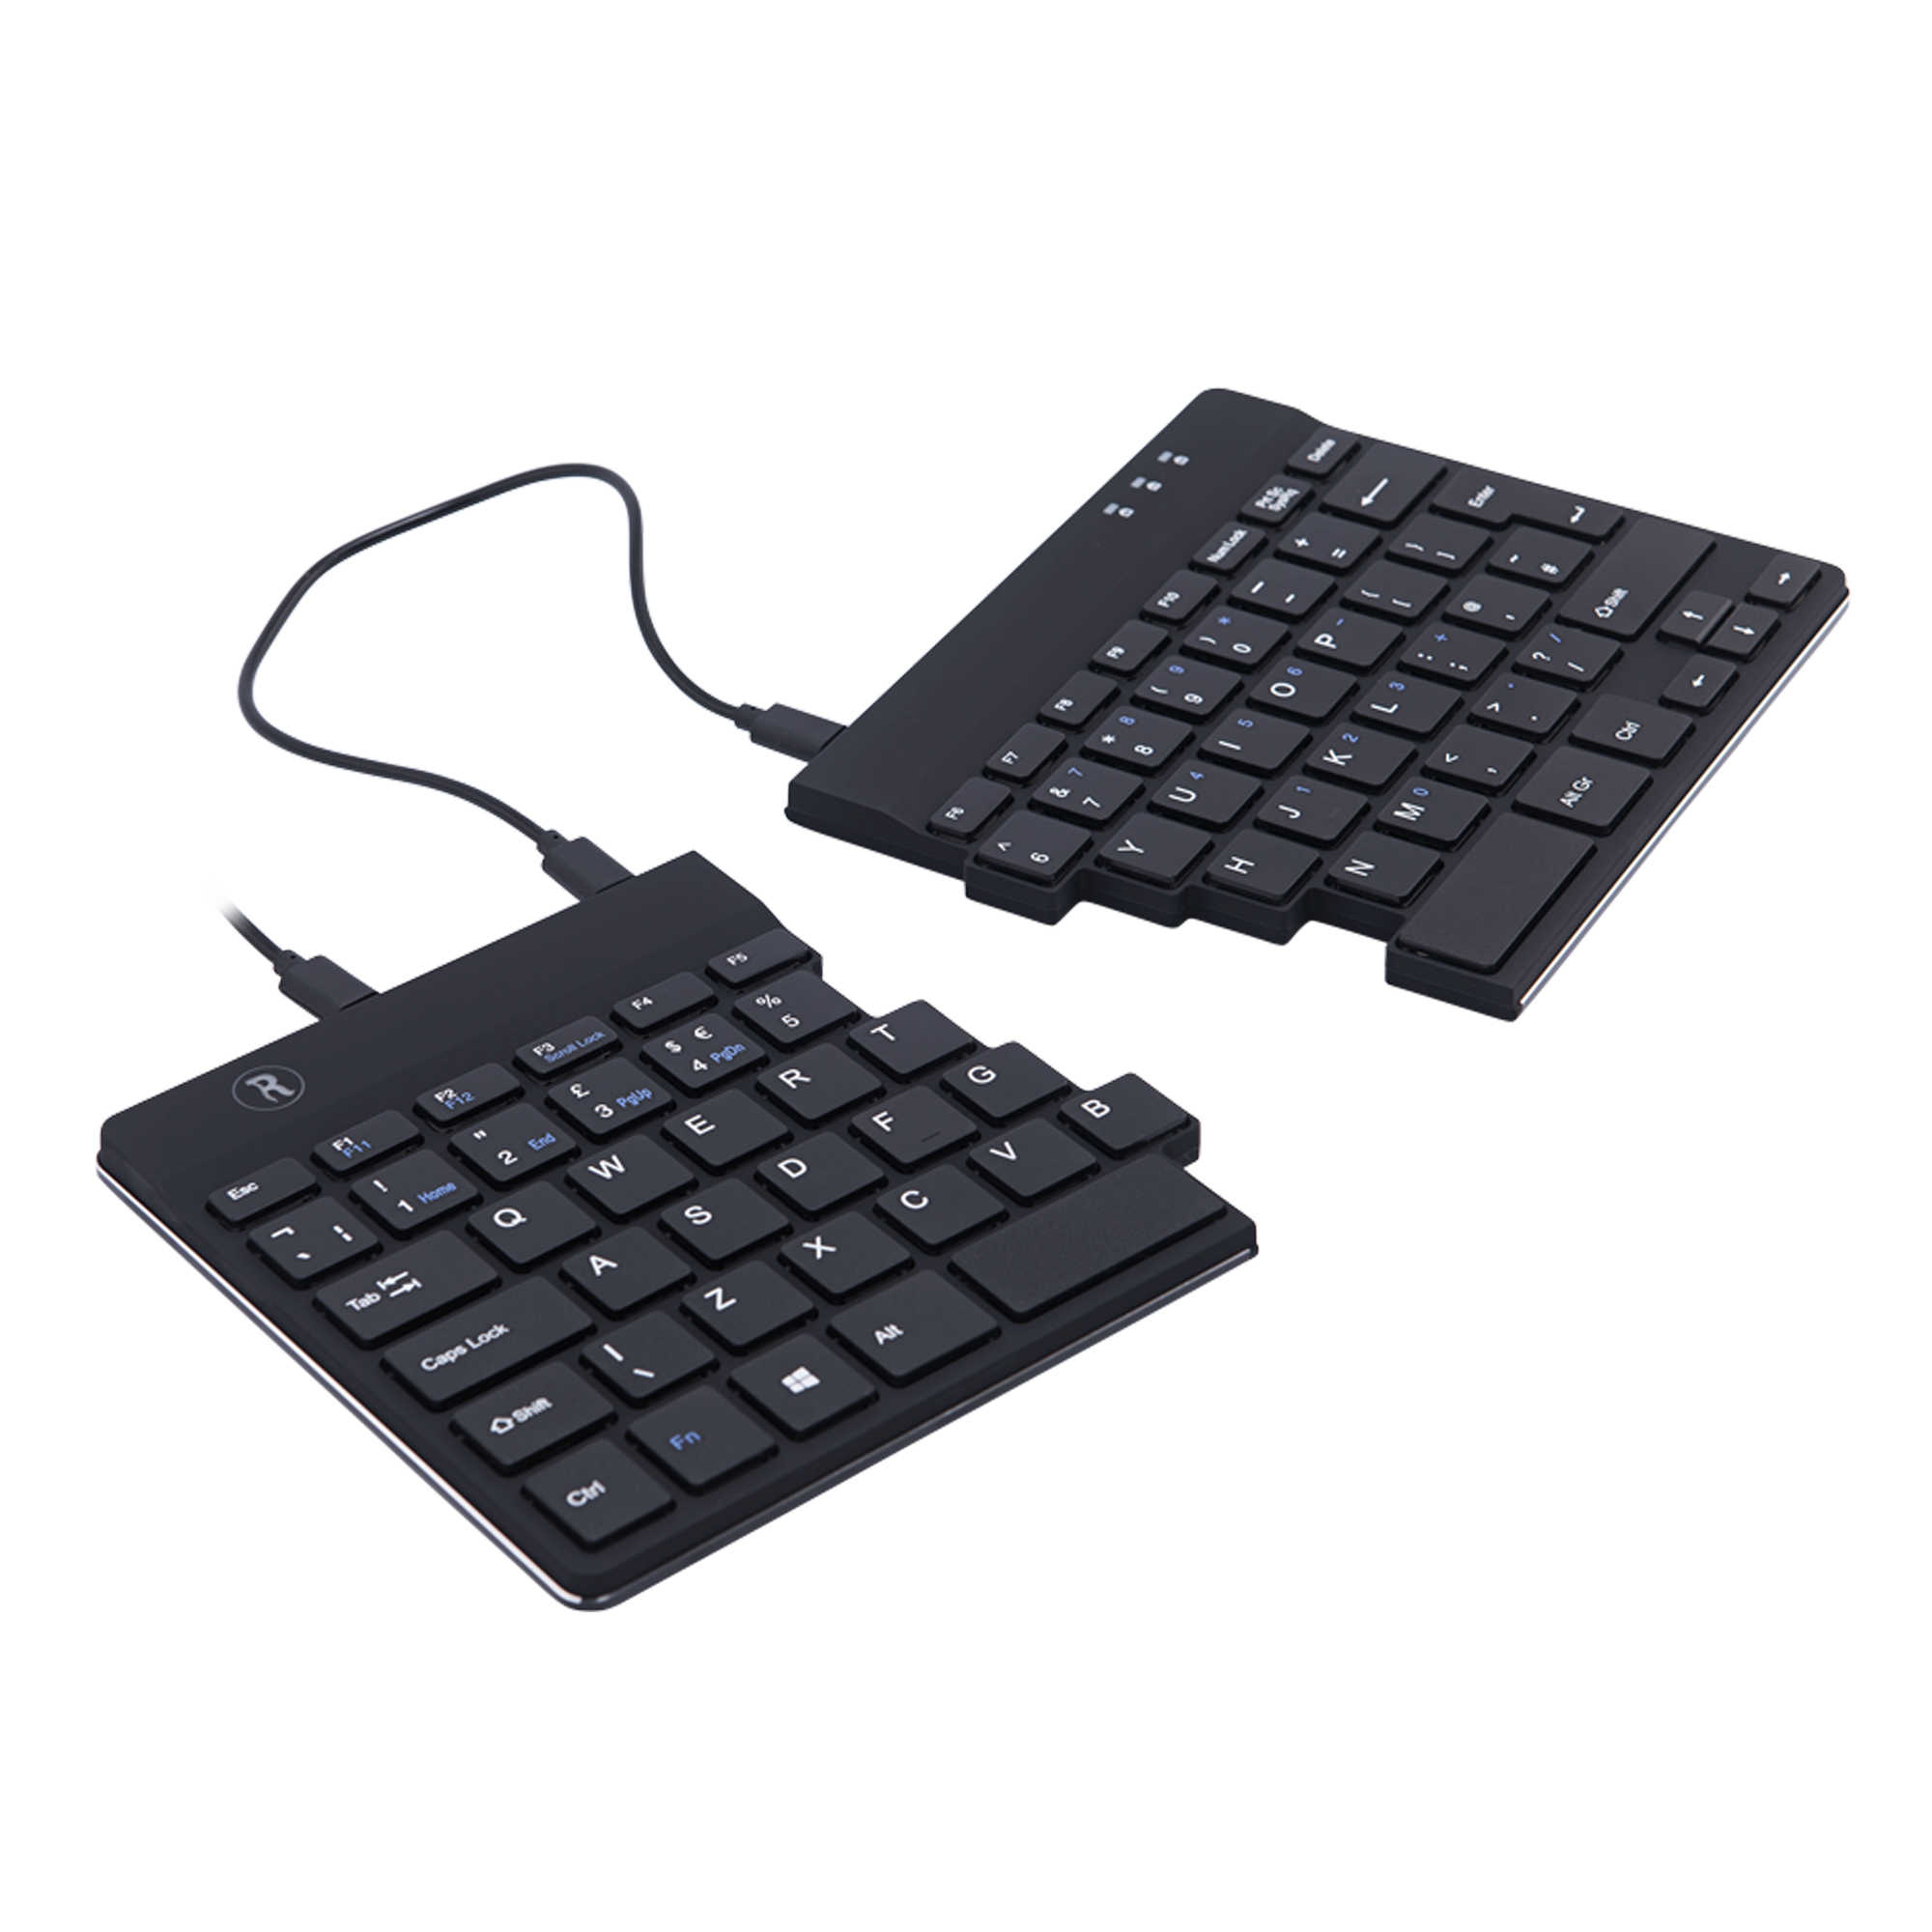 R-Go Split Break Ergonomische Tastatur, QWERTY (UK), schwarz, kabelgebunden